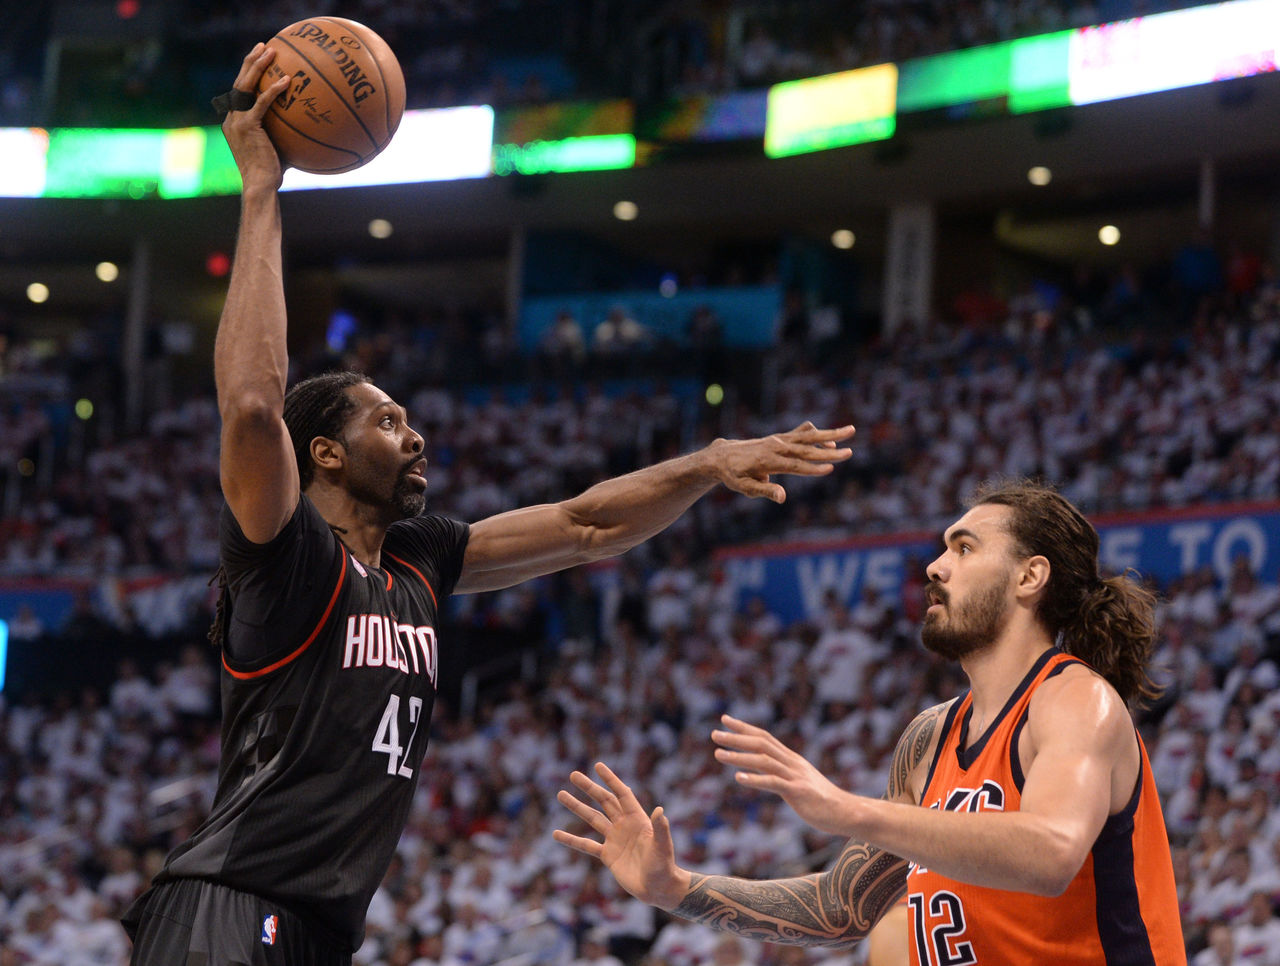 Cropped 2017 04 23t211138z 1022986007 nocid rtrmadp 3 nba playoffs houston rockets at oklahoma city thunder